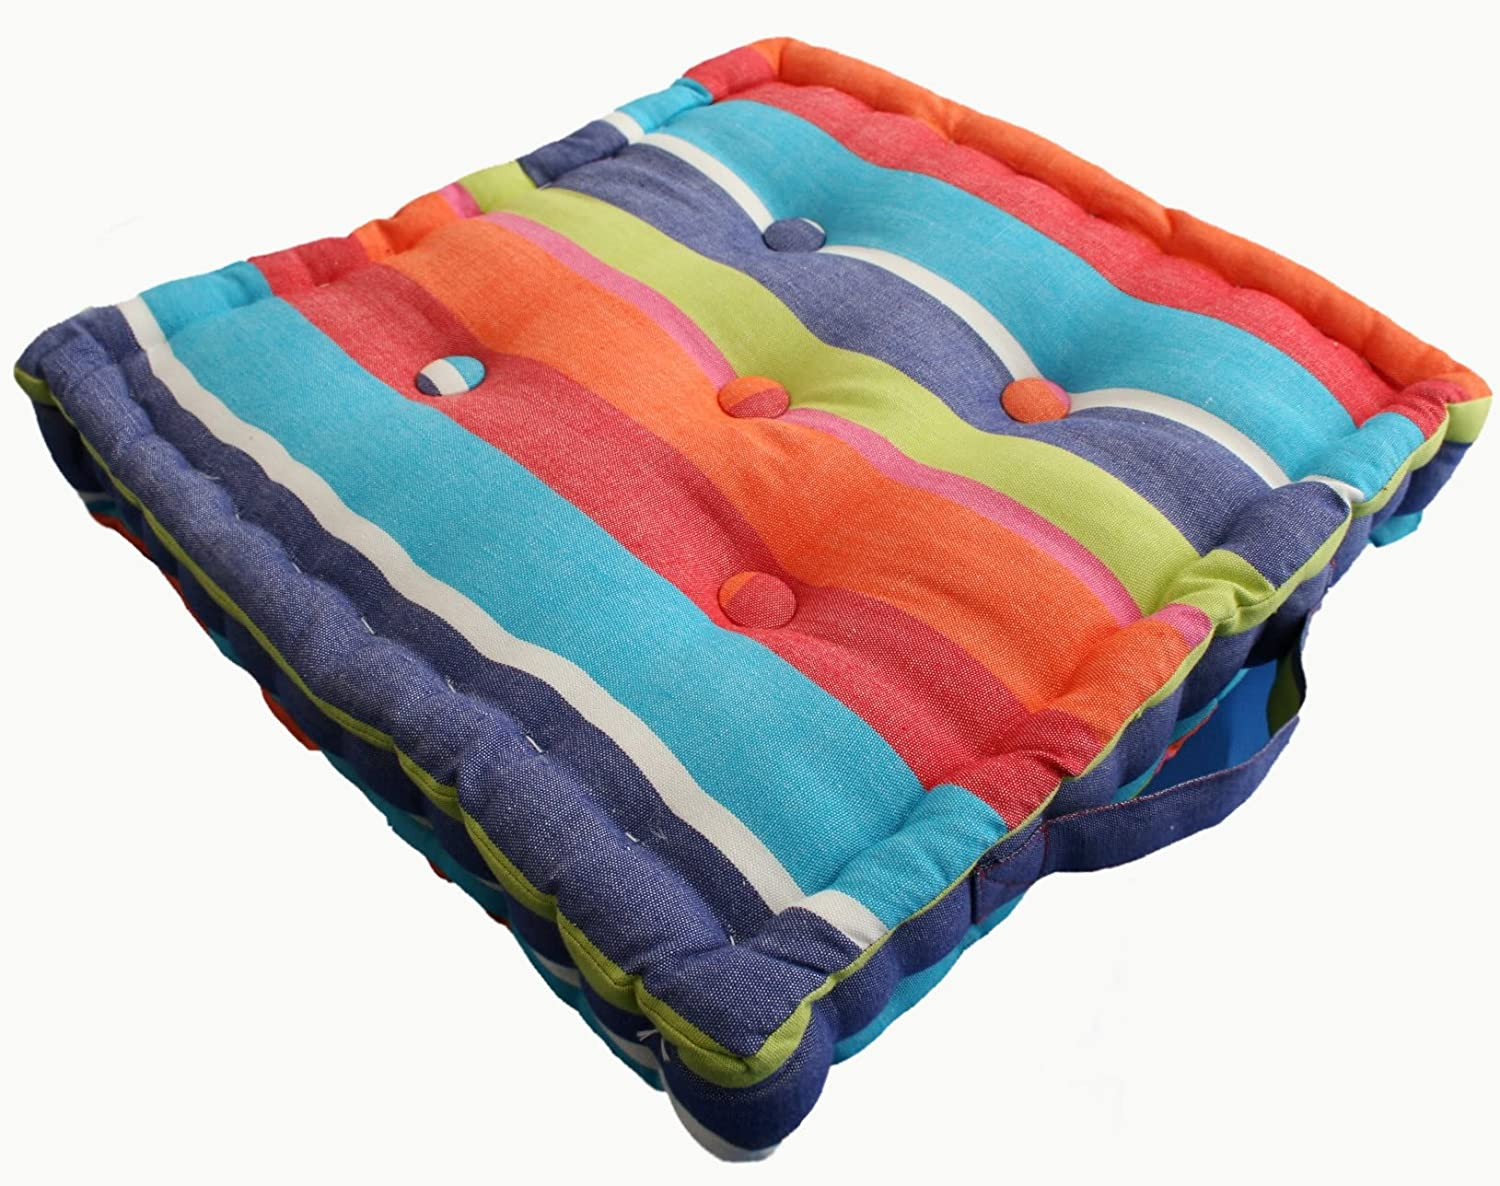 Multi Coloured Stripe Floor Cushion   100% Cotton   40 X 40 X 10 Cm Square    Indoor   Garden   Dining Chair Booster Seat Cushion Pad: Amazon.co.uk:  Garden U0026 ...